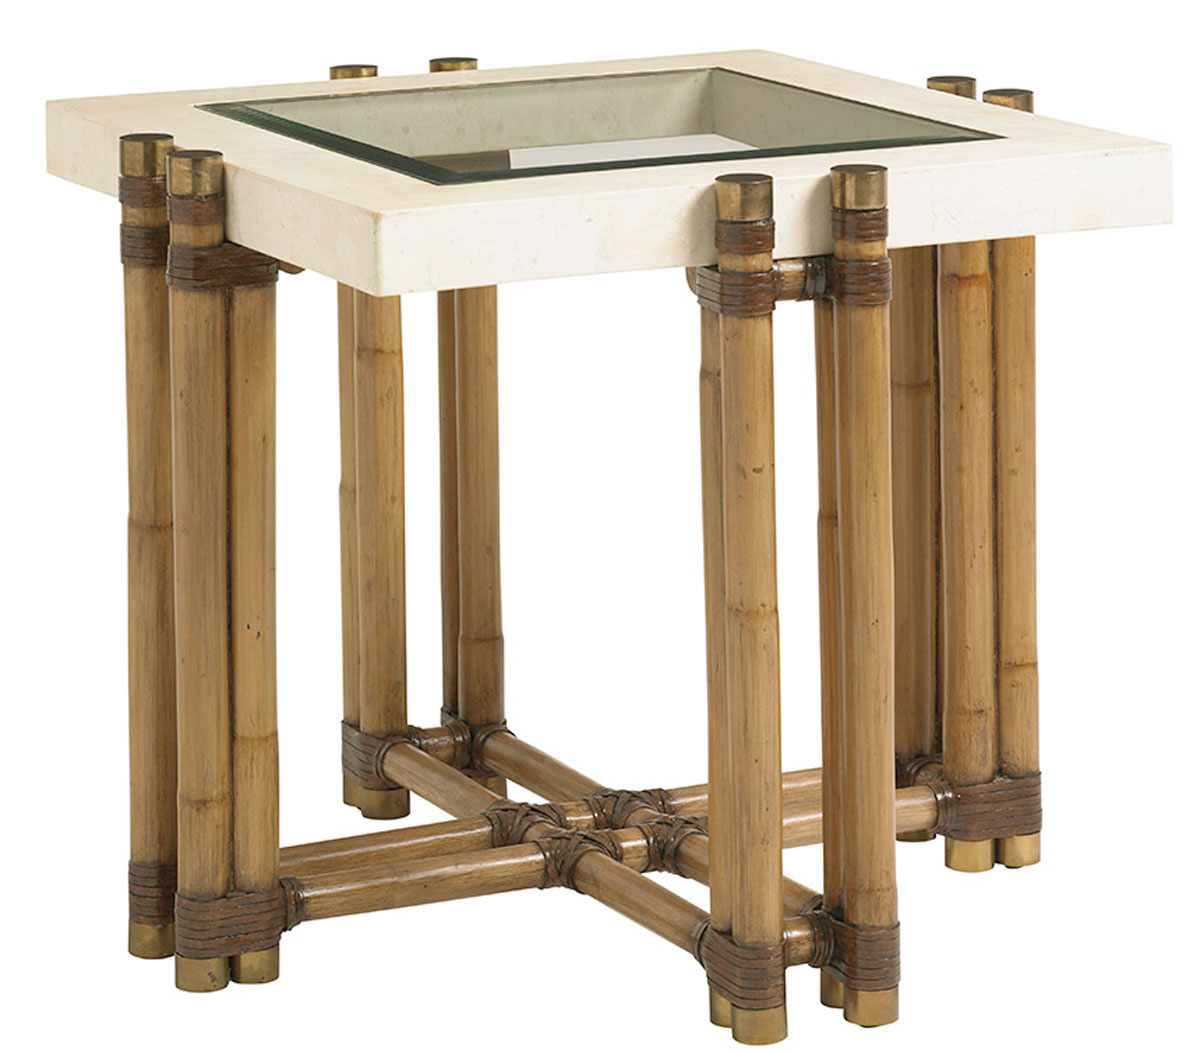 LOS CABOS LAMP TABLE